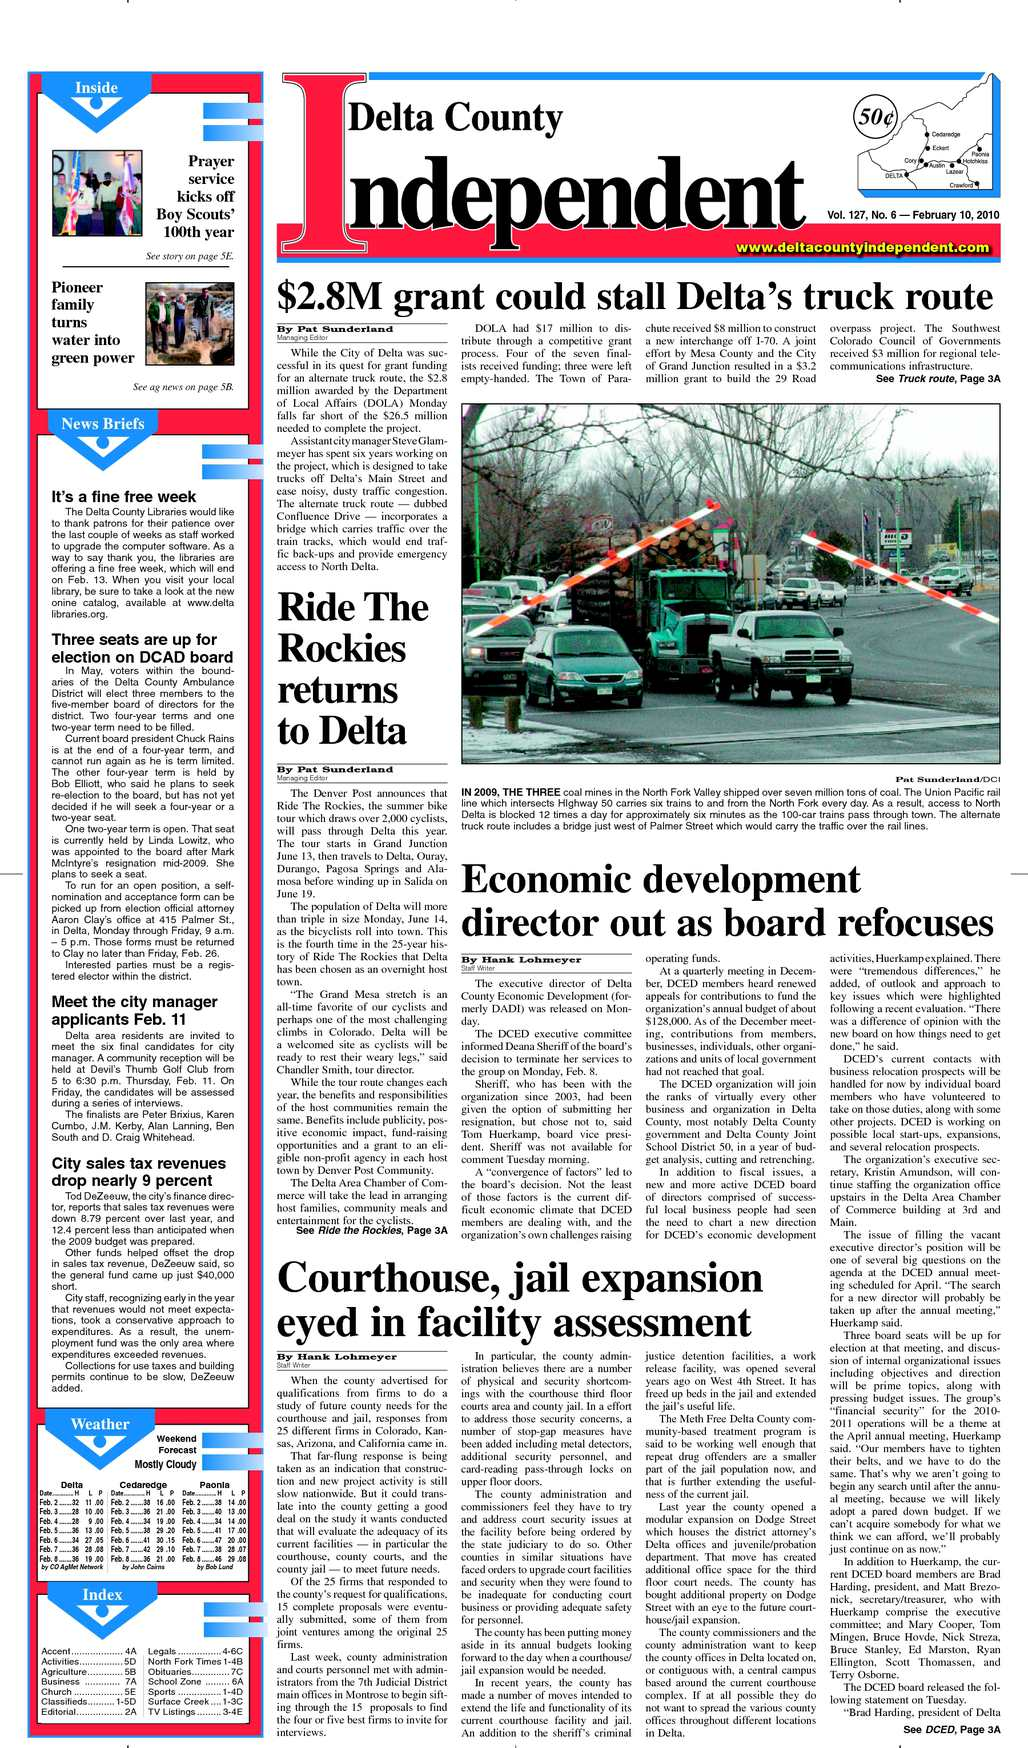 46f6c7958fbf Calaméo - Delta County Independent Feb. 10, 2010